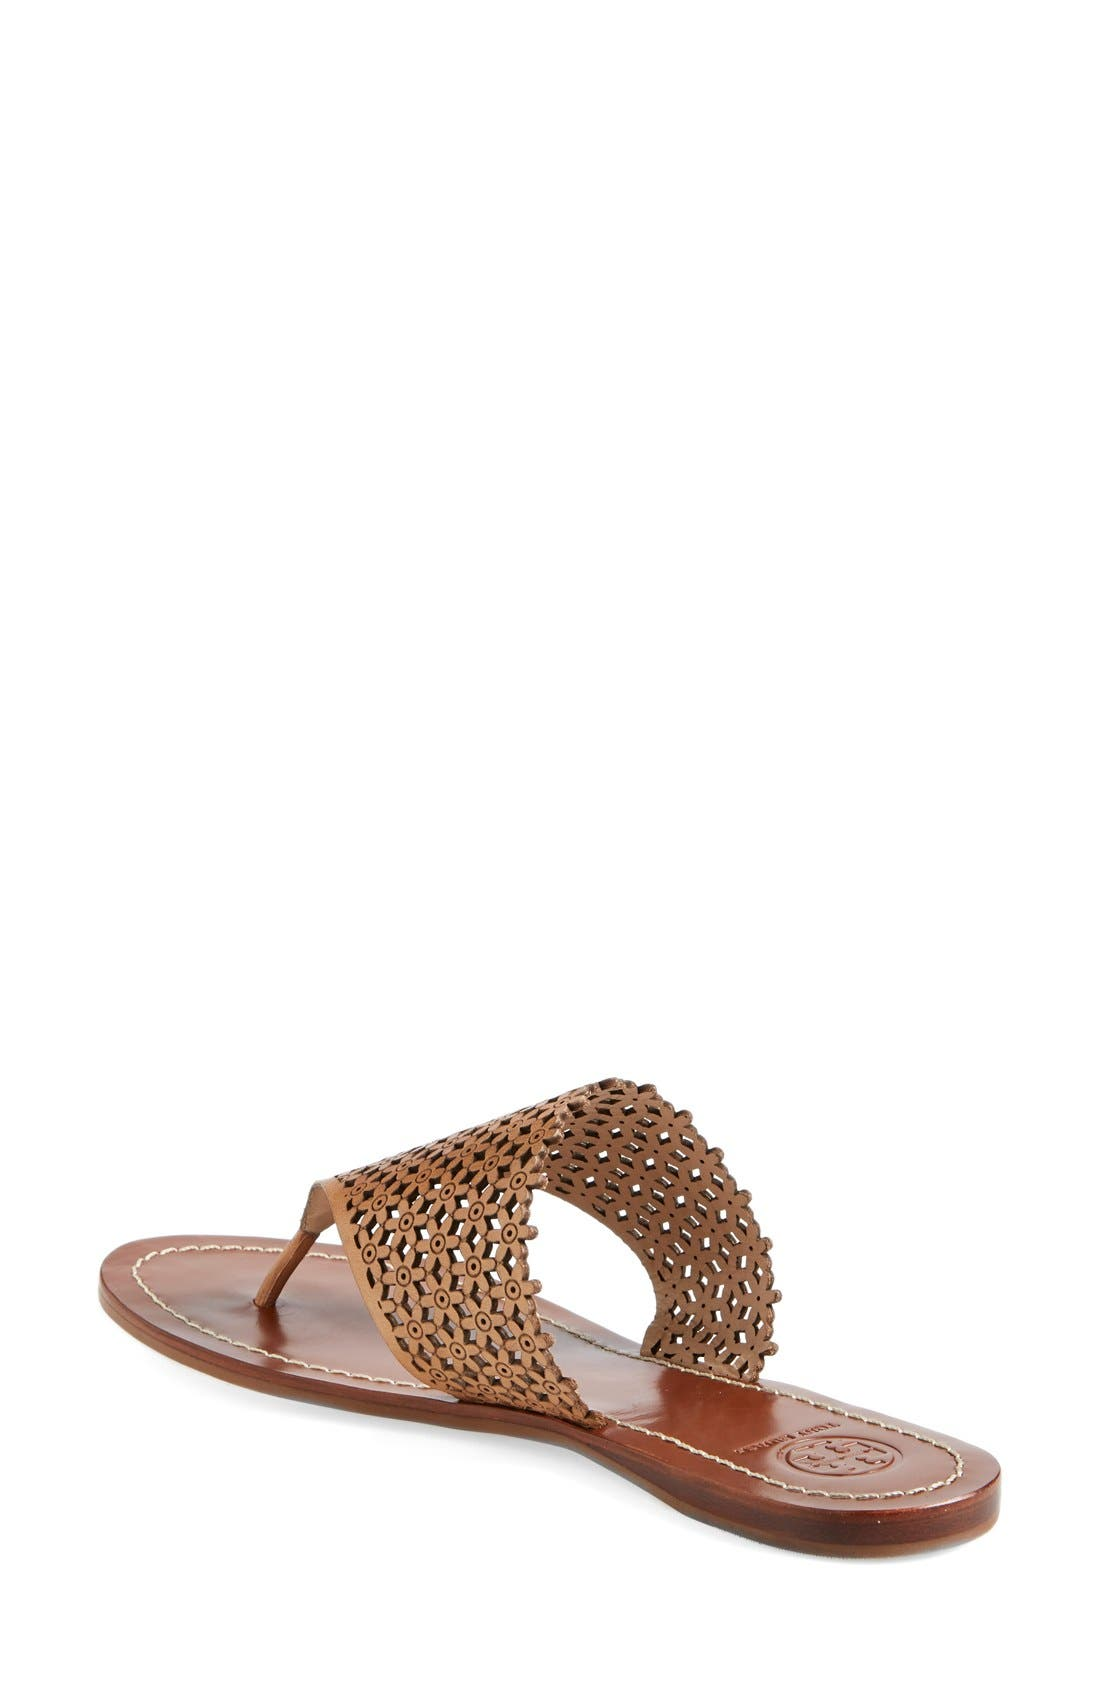 Alternate Image 4  - Tory Burch 'Daisy' Perforated Sandal (Women)